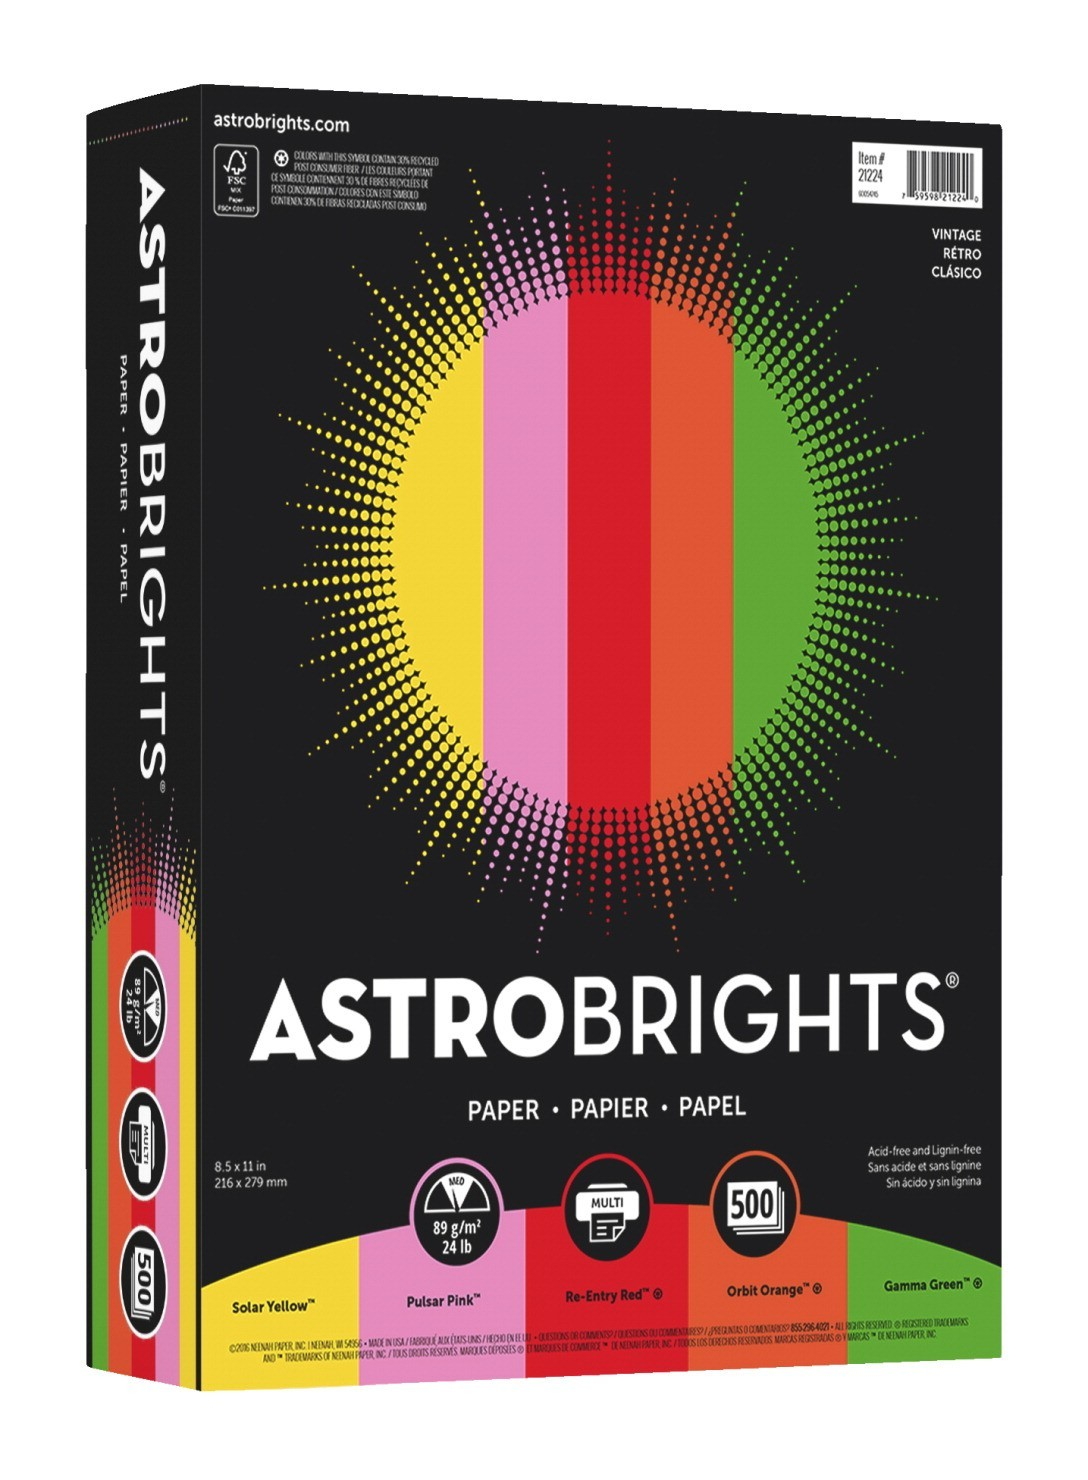 8-1/2 X 11 Astrobrights Colored Paper, 24lb., Assorted Vintage Colors - 500/Ream